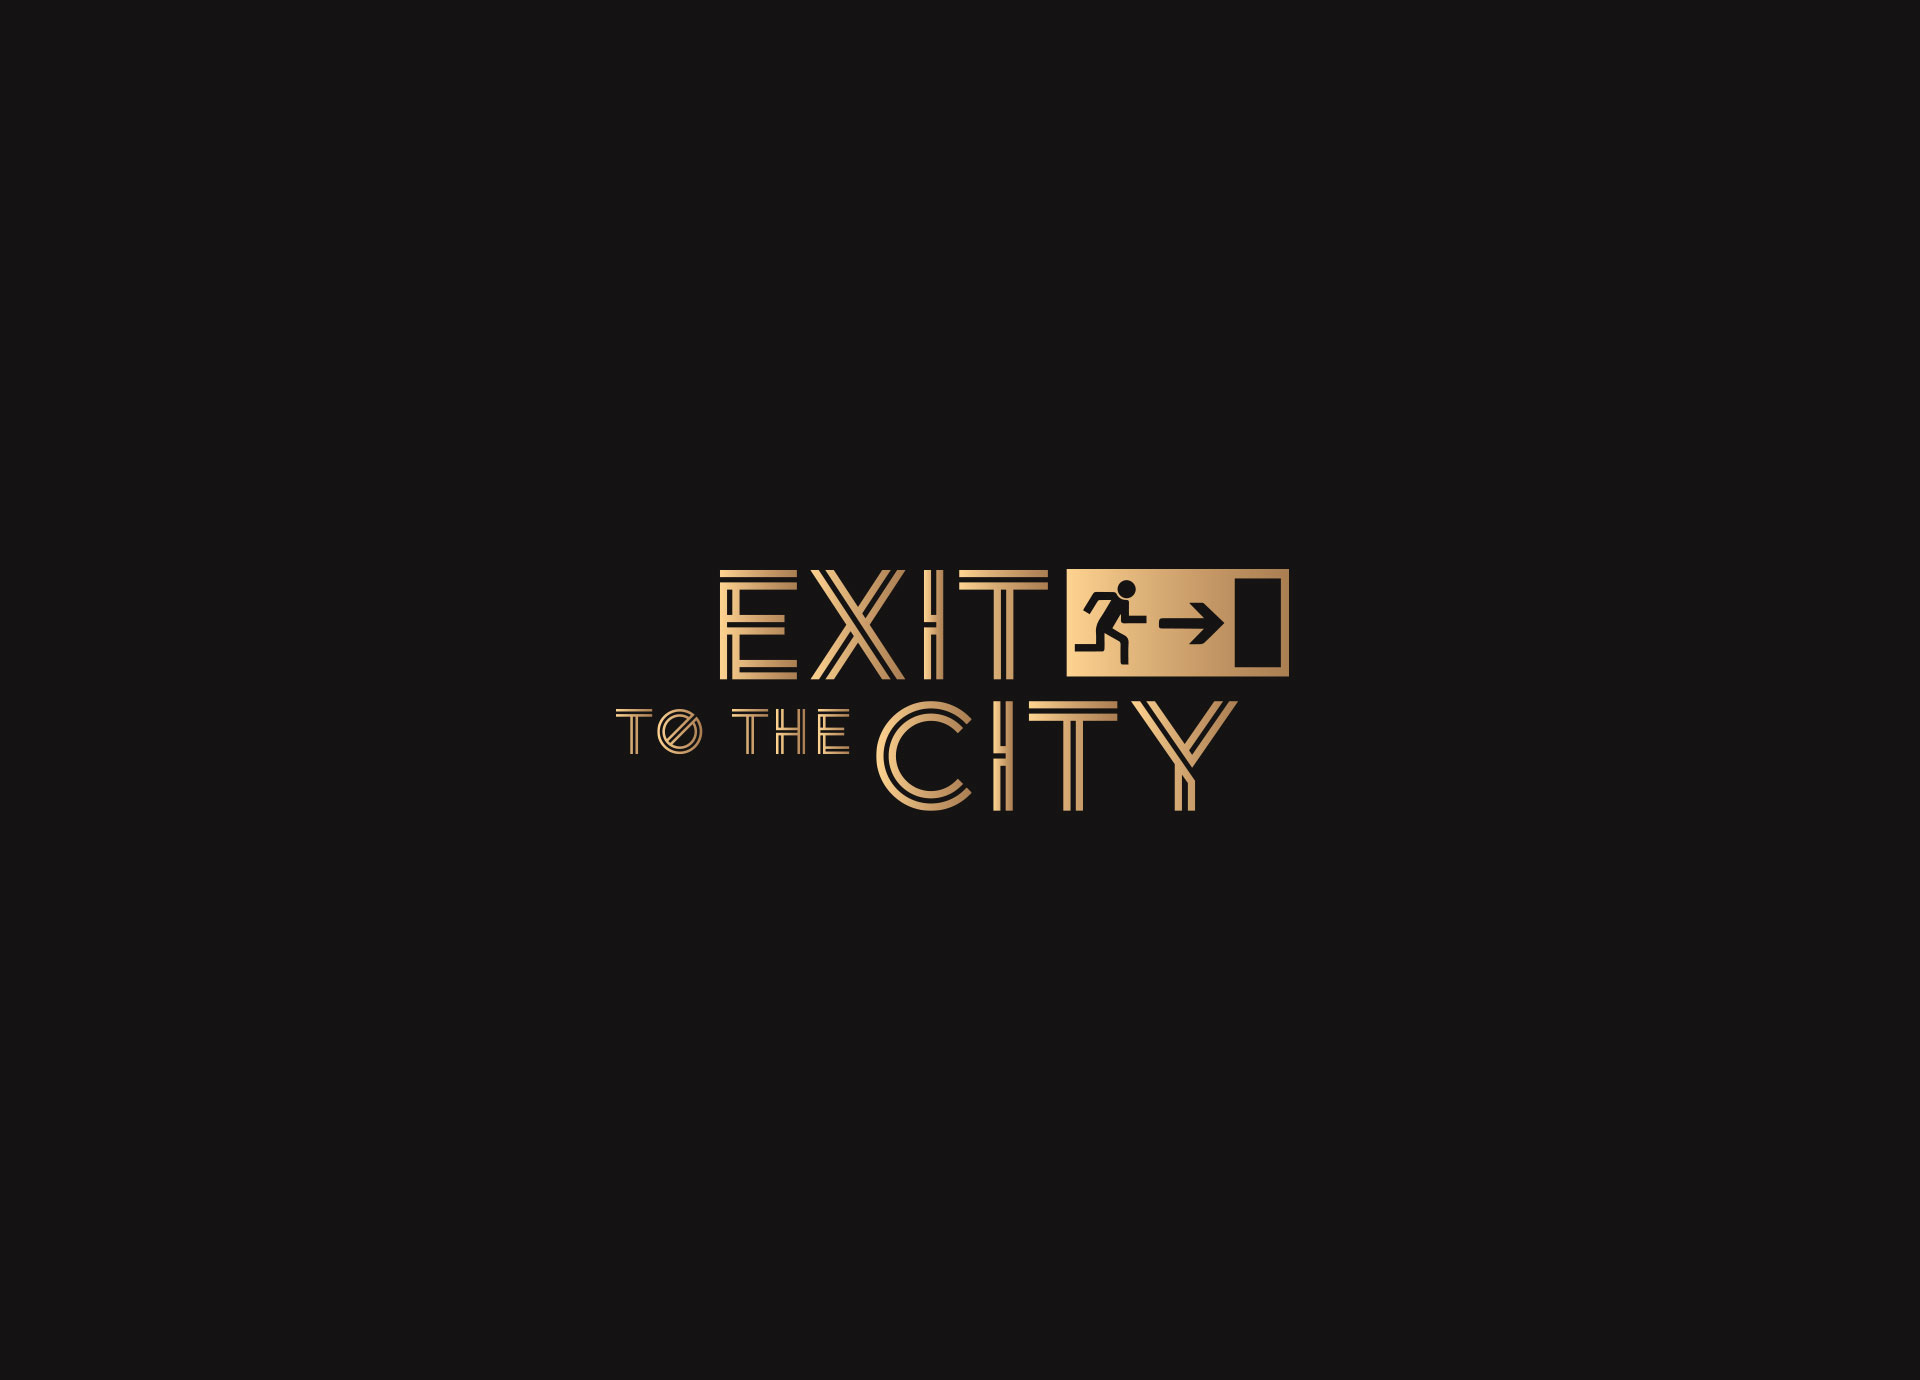 1920x1380-EXIT-TO-THE-CITY